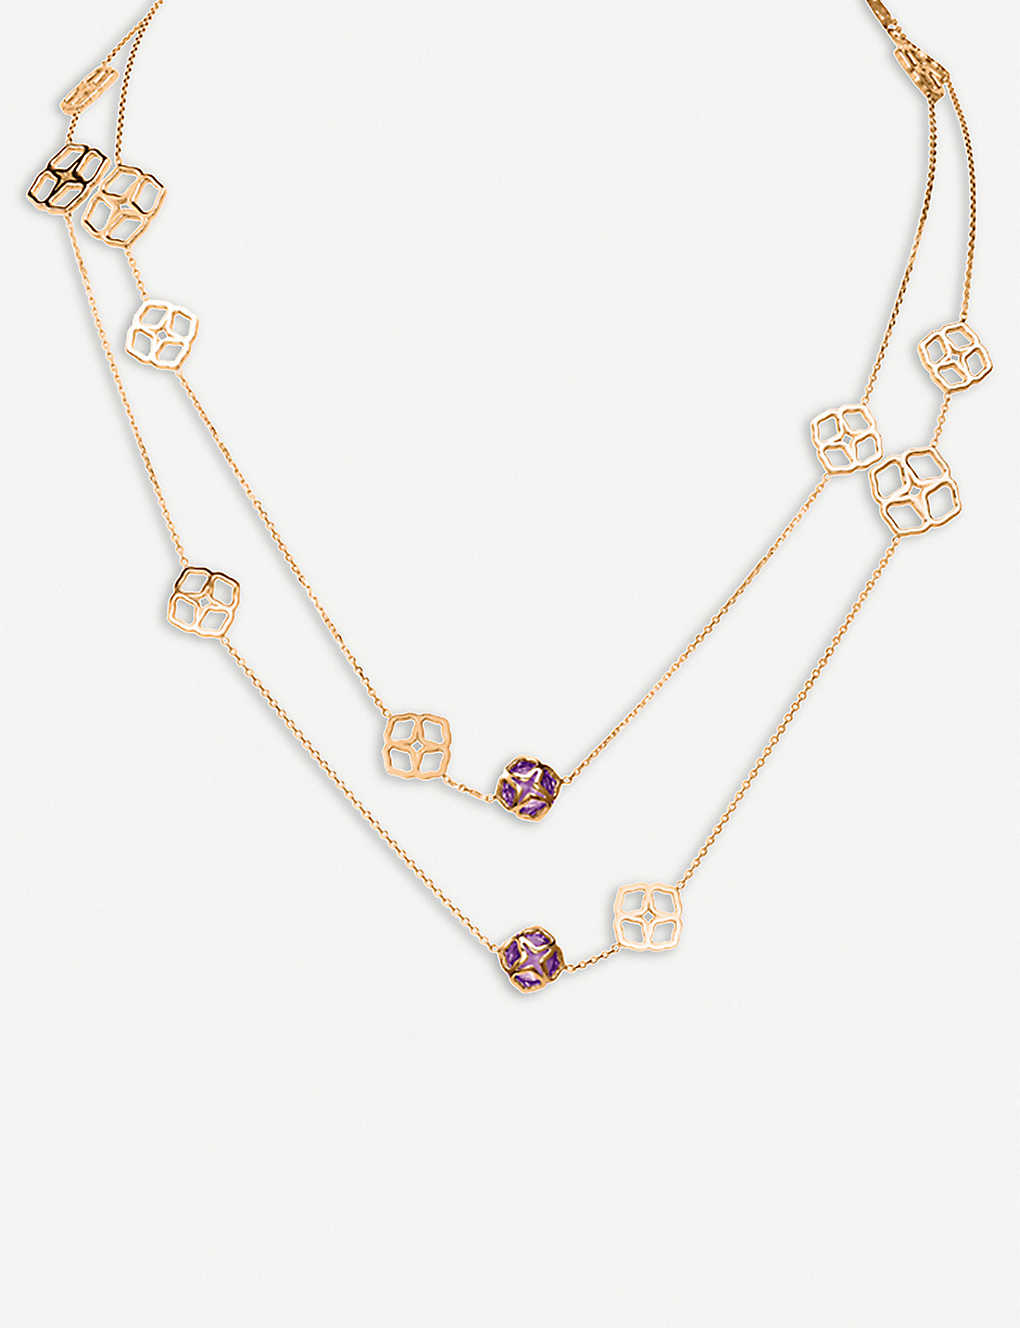 6917fdc60362d CHOPARD - IMPERIALE Sautoir 18ct rose-gold and amethyst necklace |  Selfridges.com